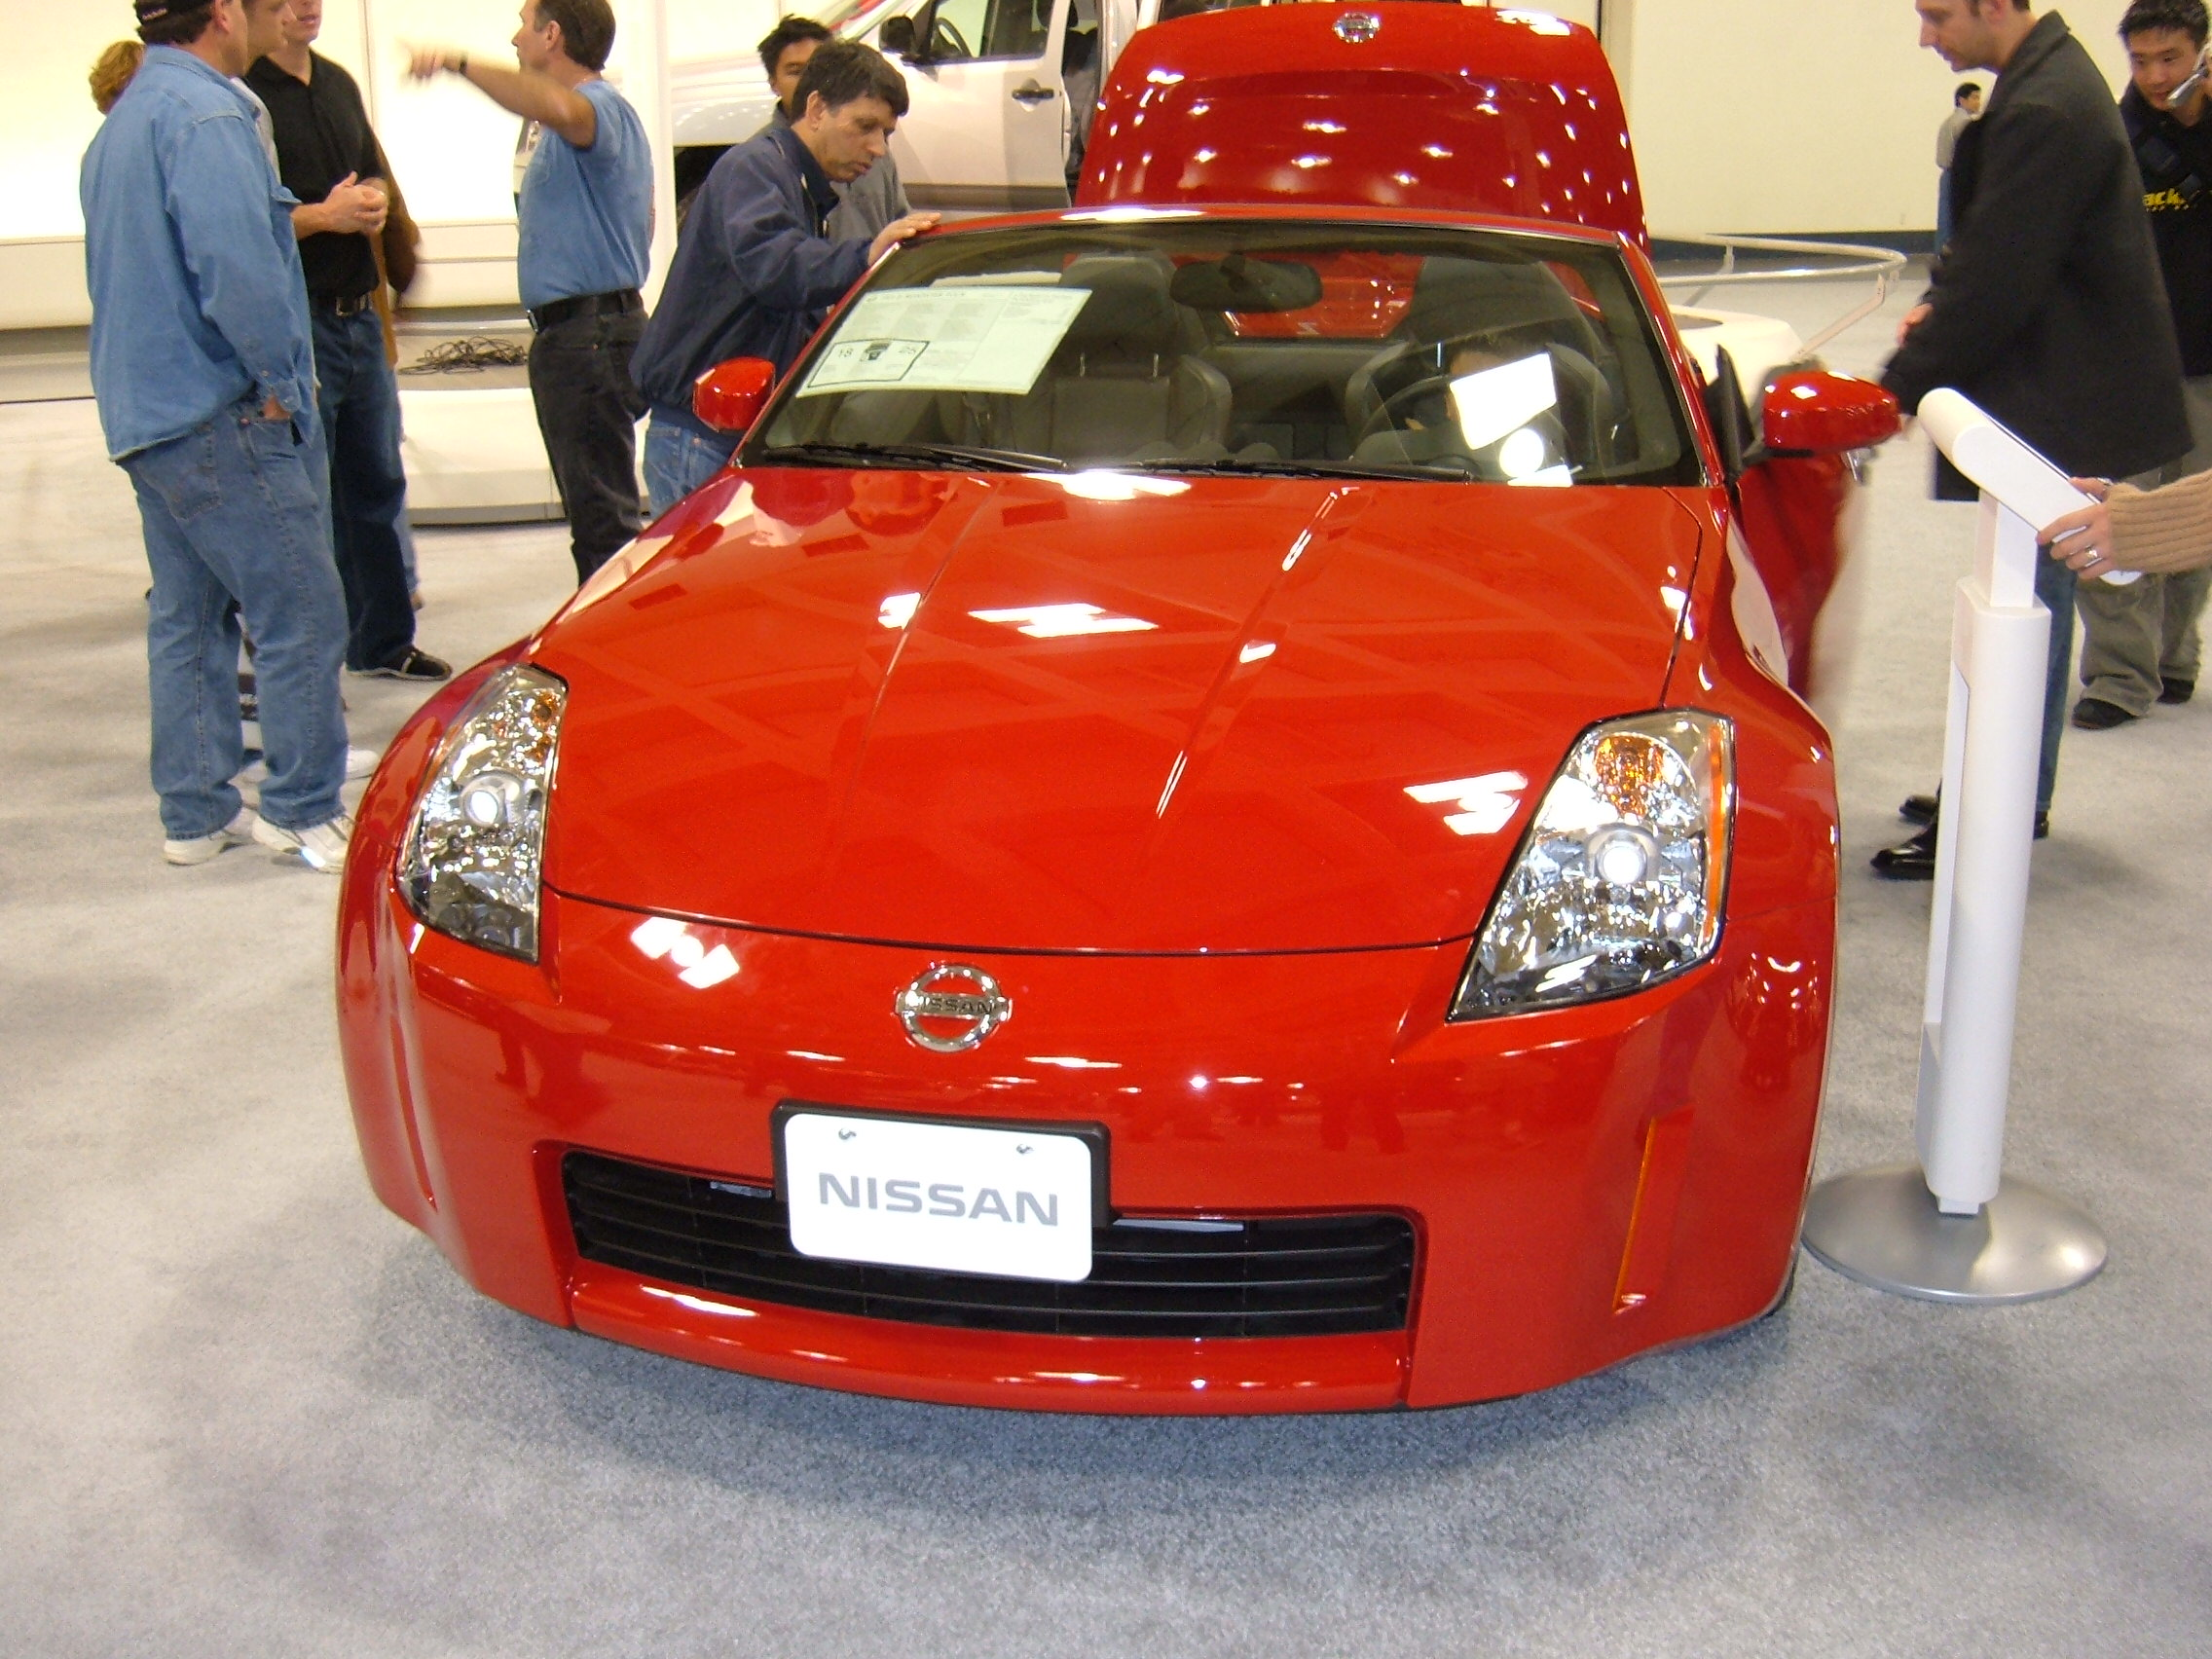 File2005 red nissan 350z roadster frontg wikimedia commons file2005 red nissan 350z roadster frontg sciox Image collections